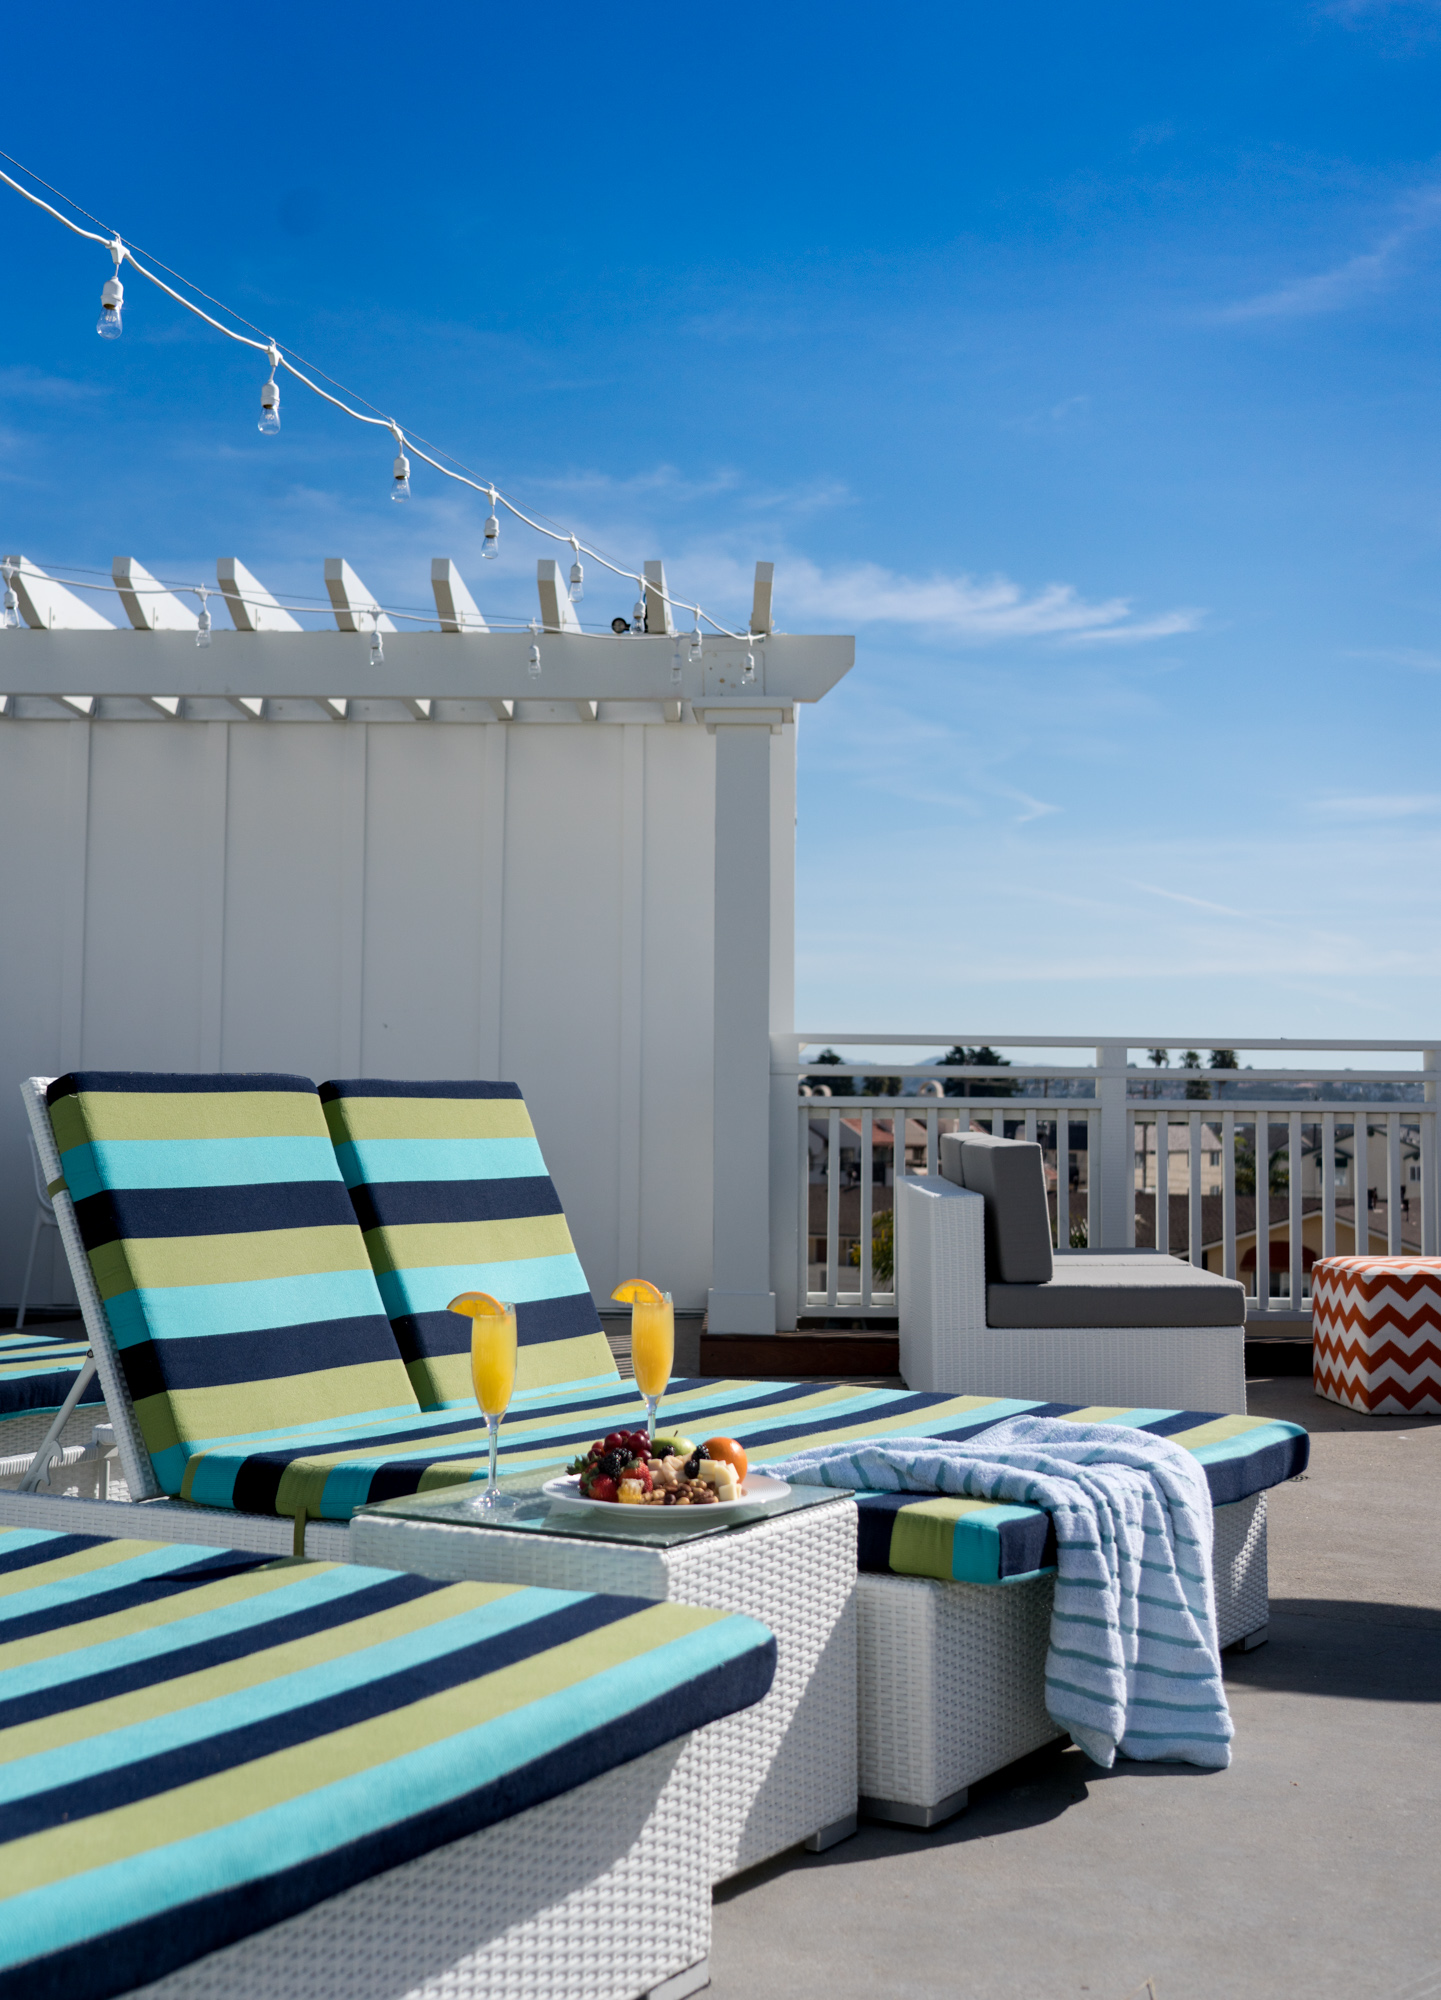 The Rooftop at Inn at the Pier, Pismo Beach, CA